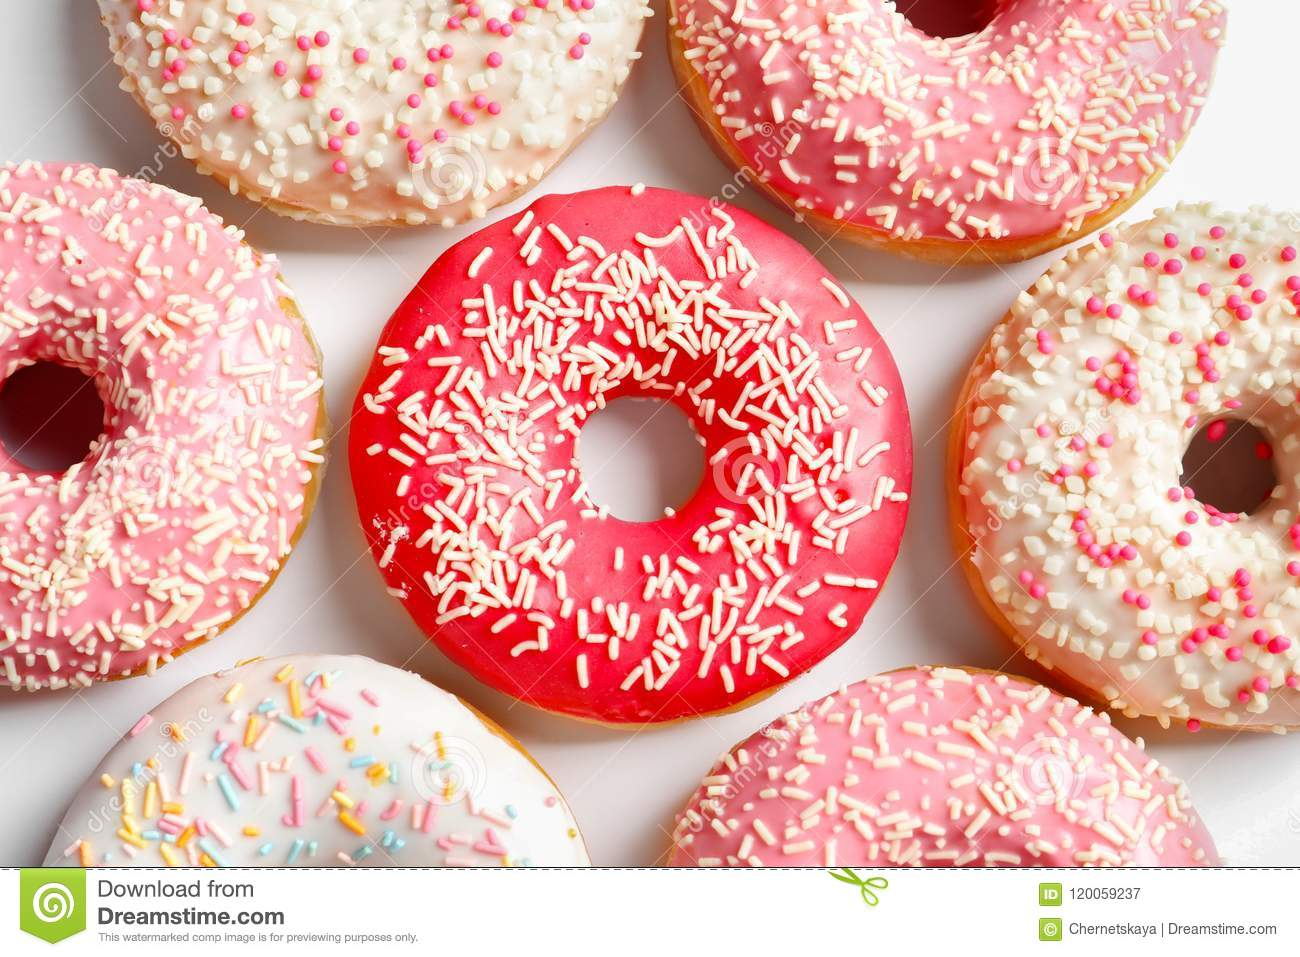 Delicious Glazed Doughnuts With Sprinkles Stock Image